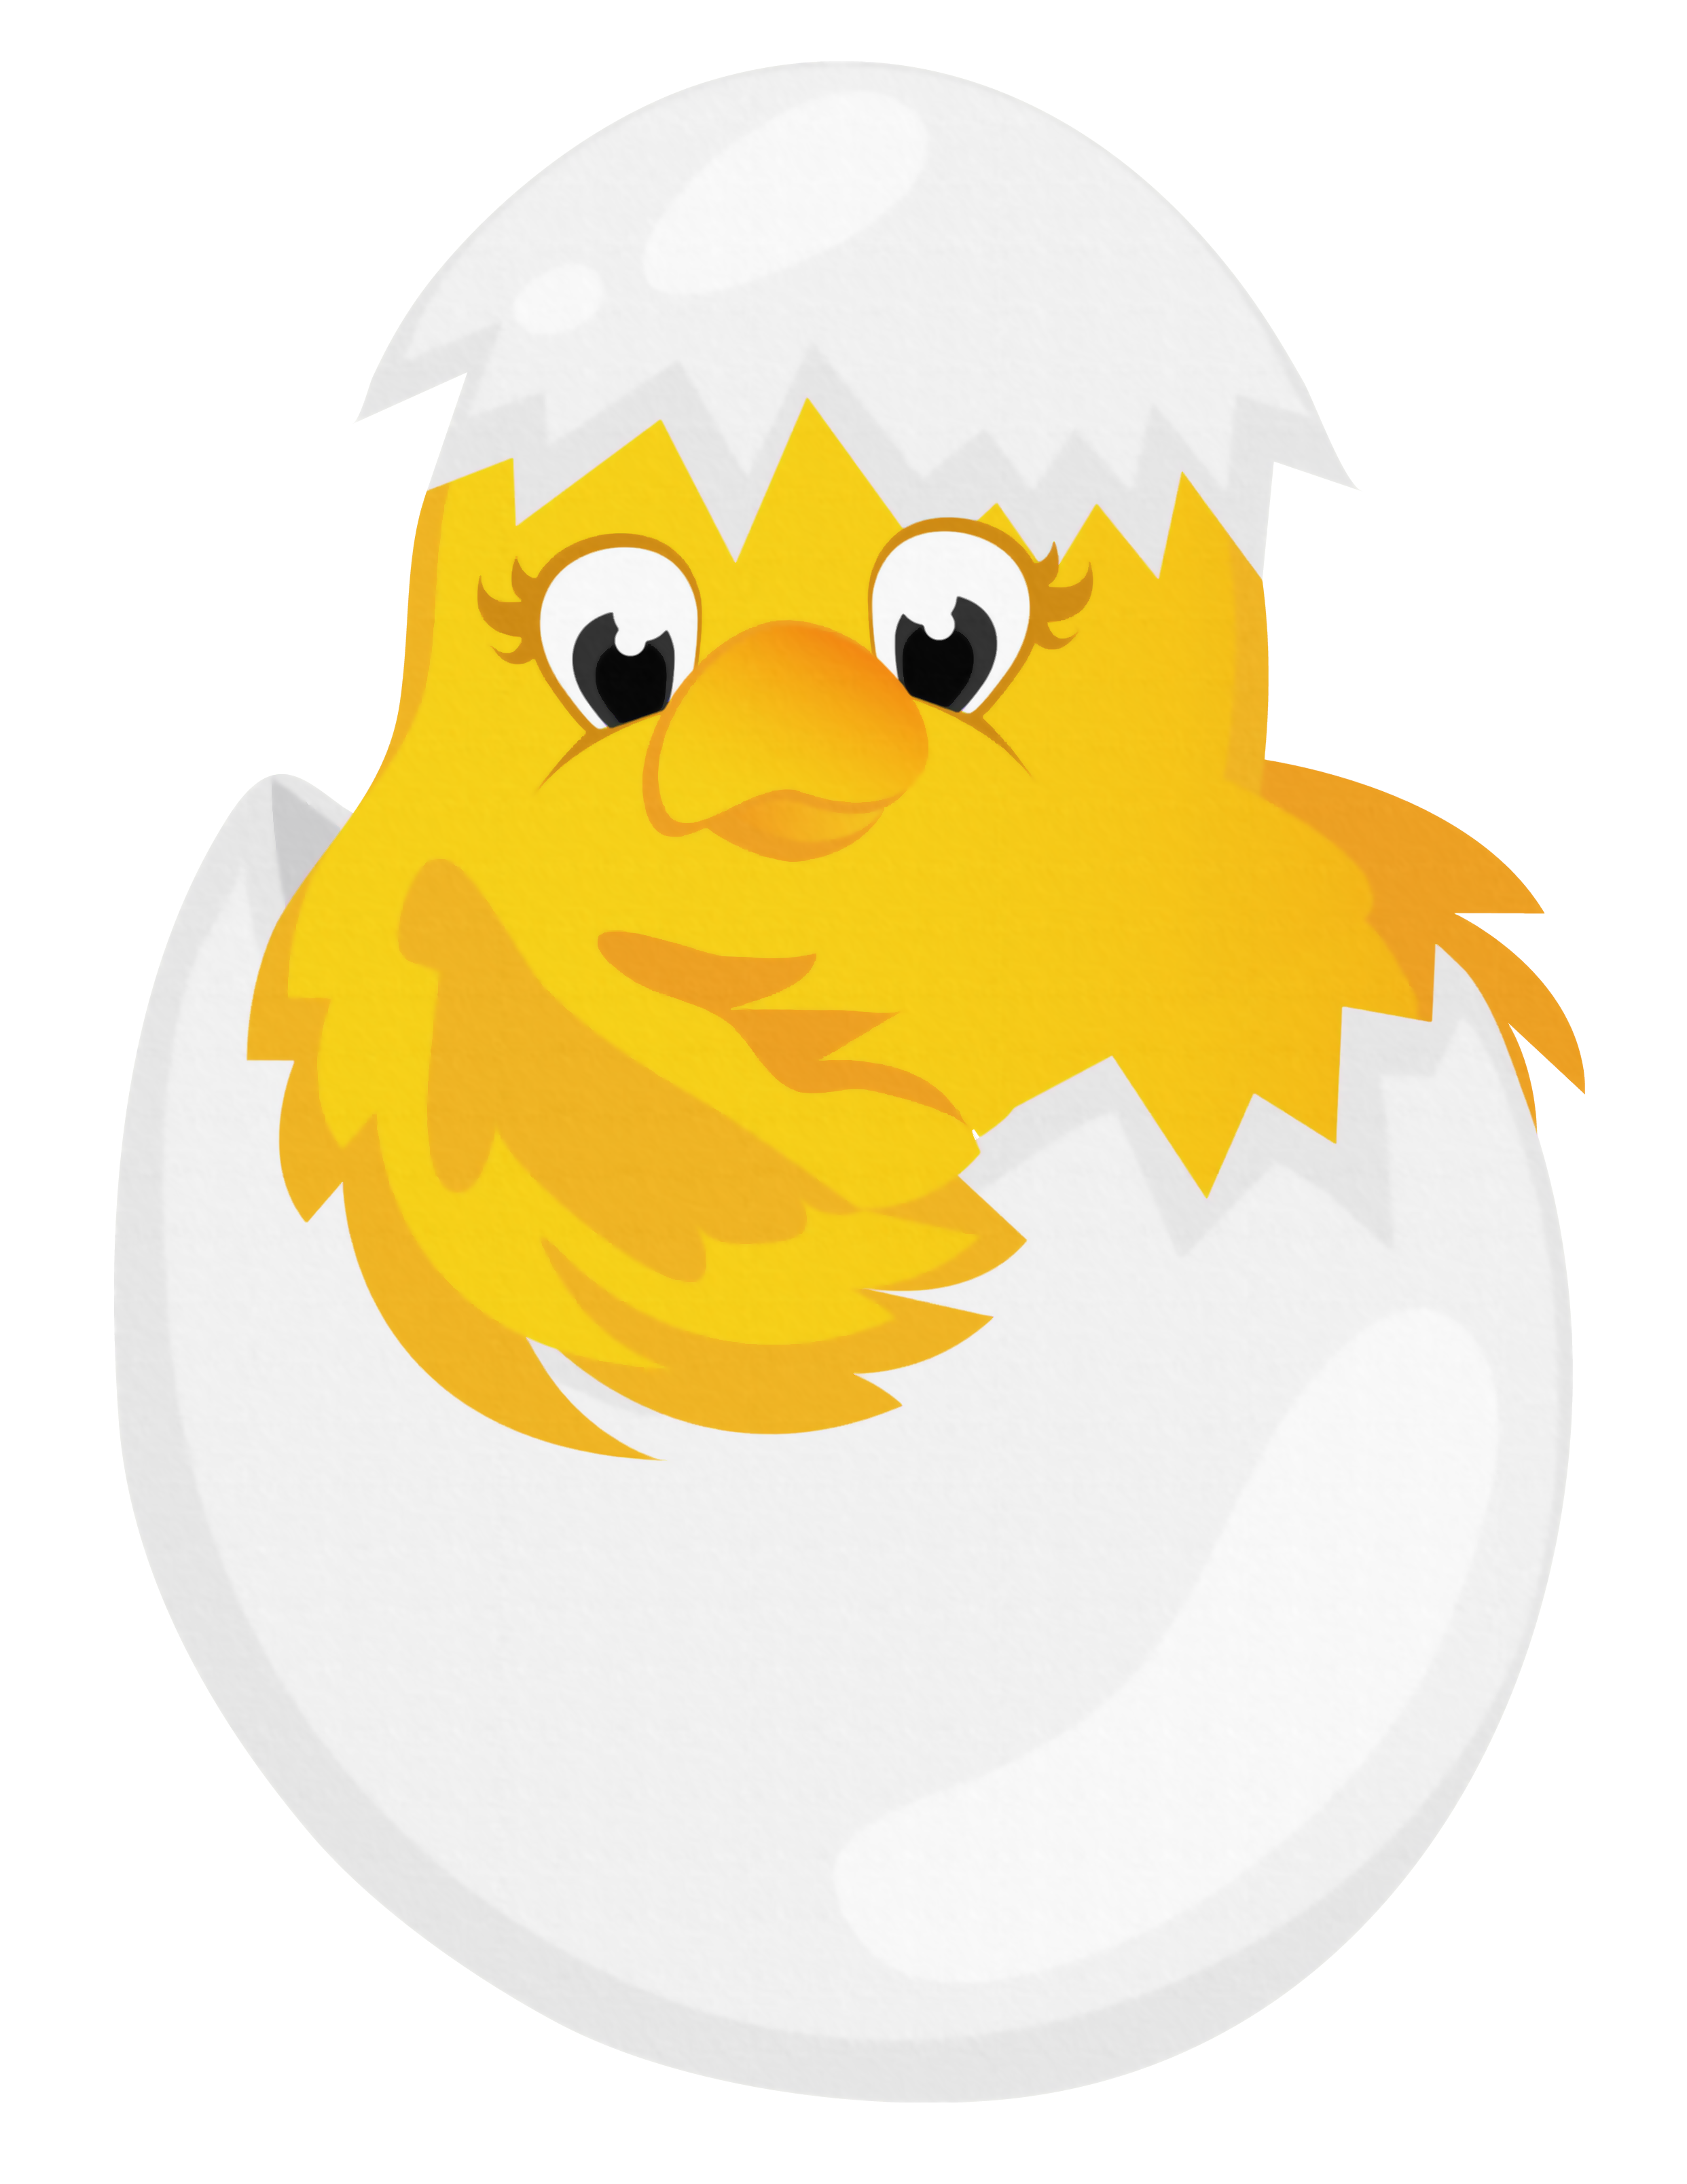 2484x3216 Easter Chicken In Egg Transparent Png Clipartu200b Gallery